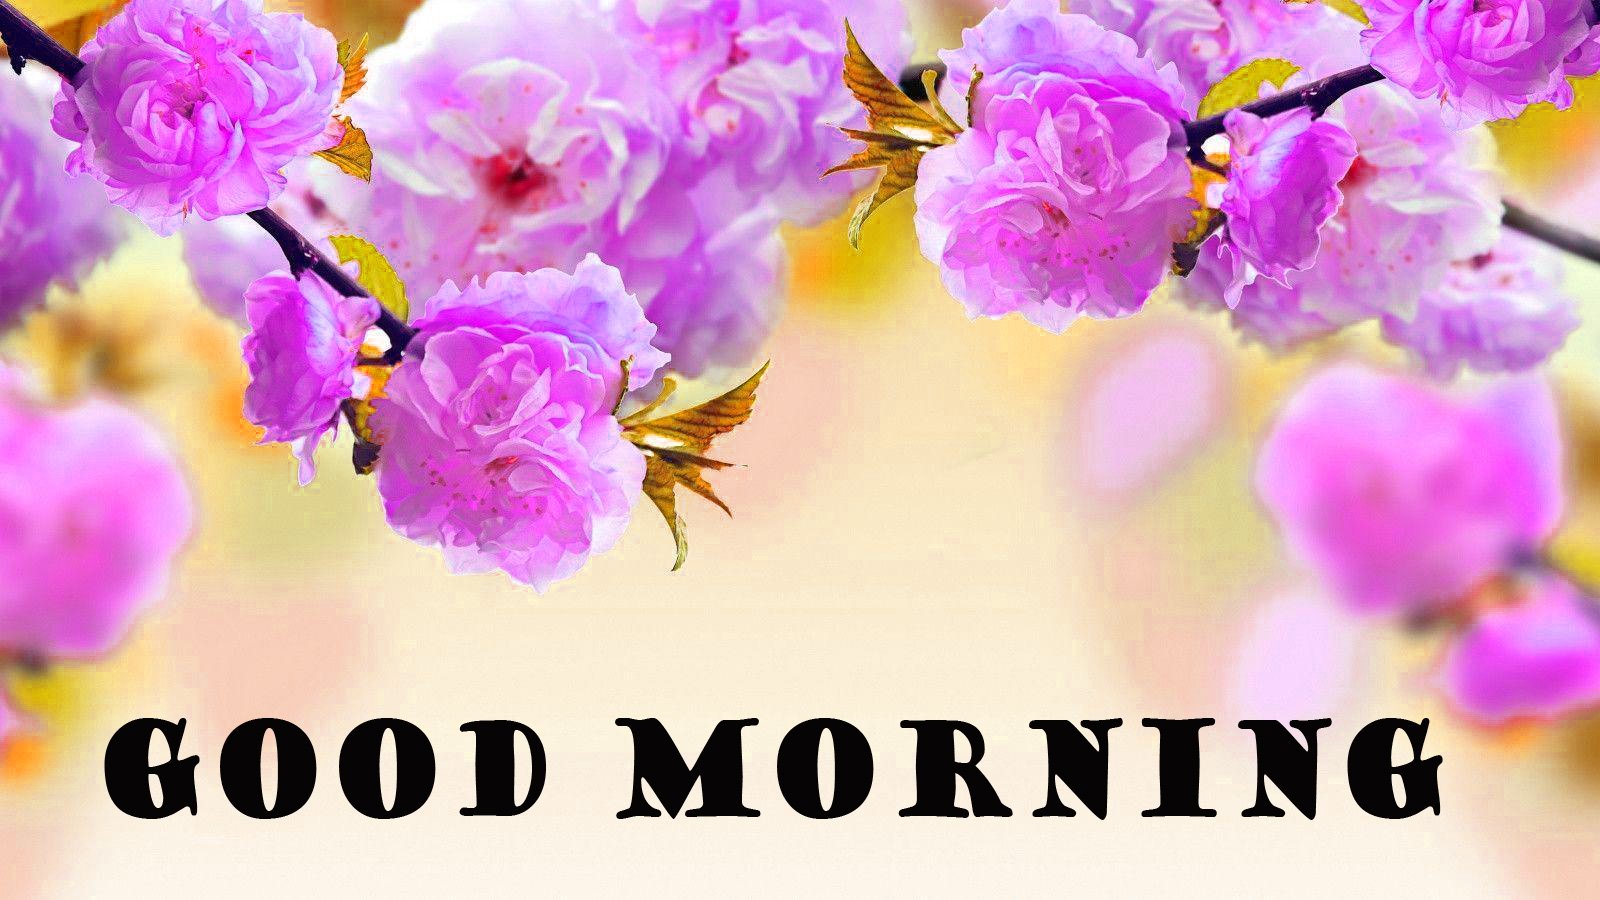 Good Morning Flowers Wallpaper Pictures Images For Facebook